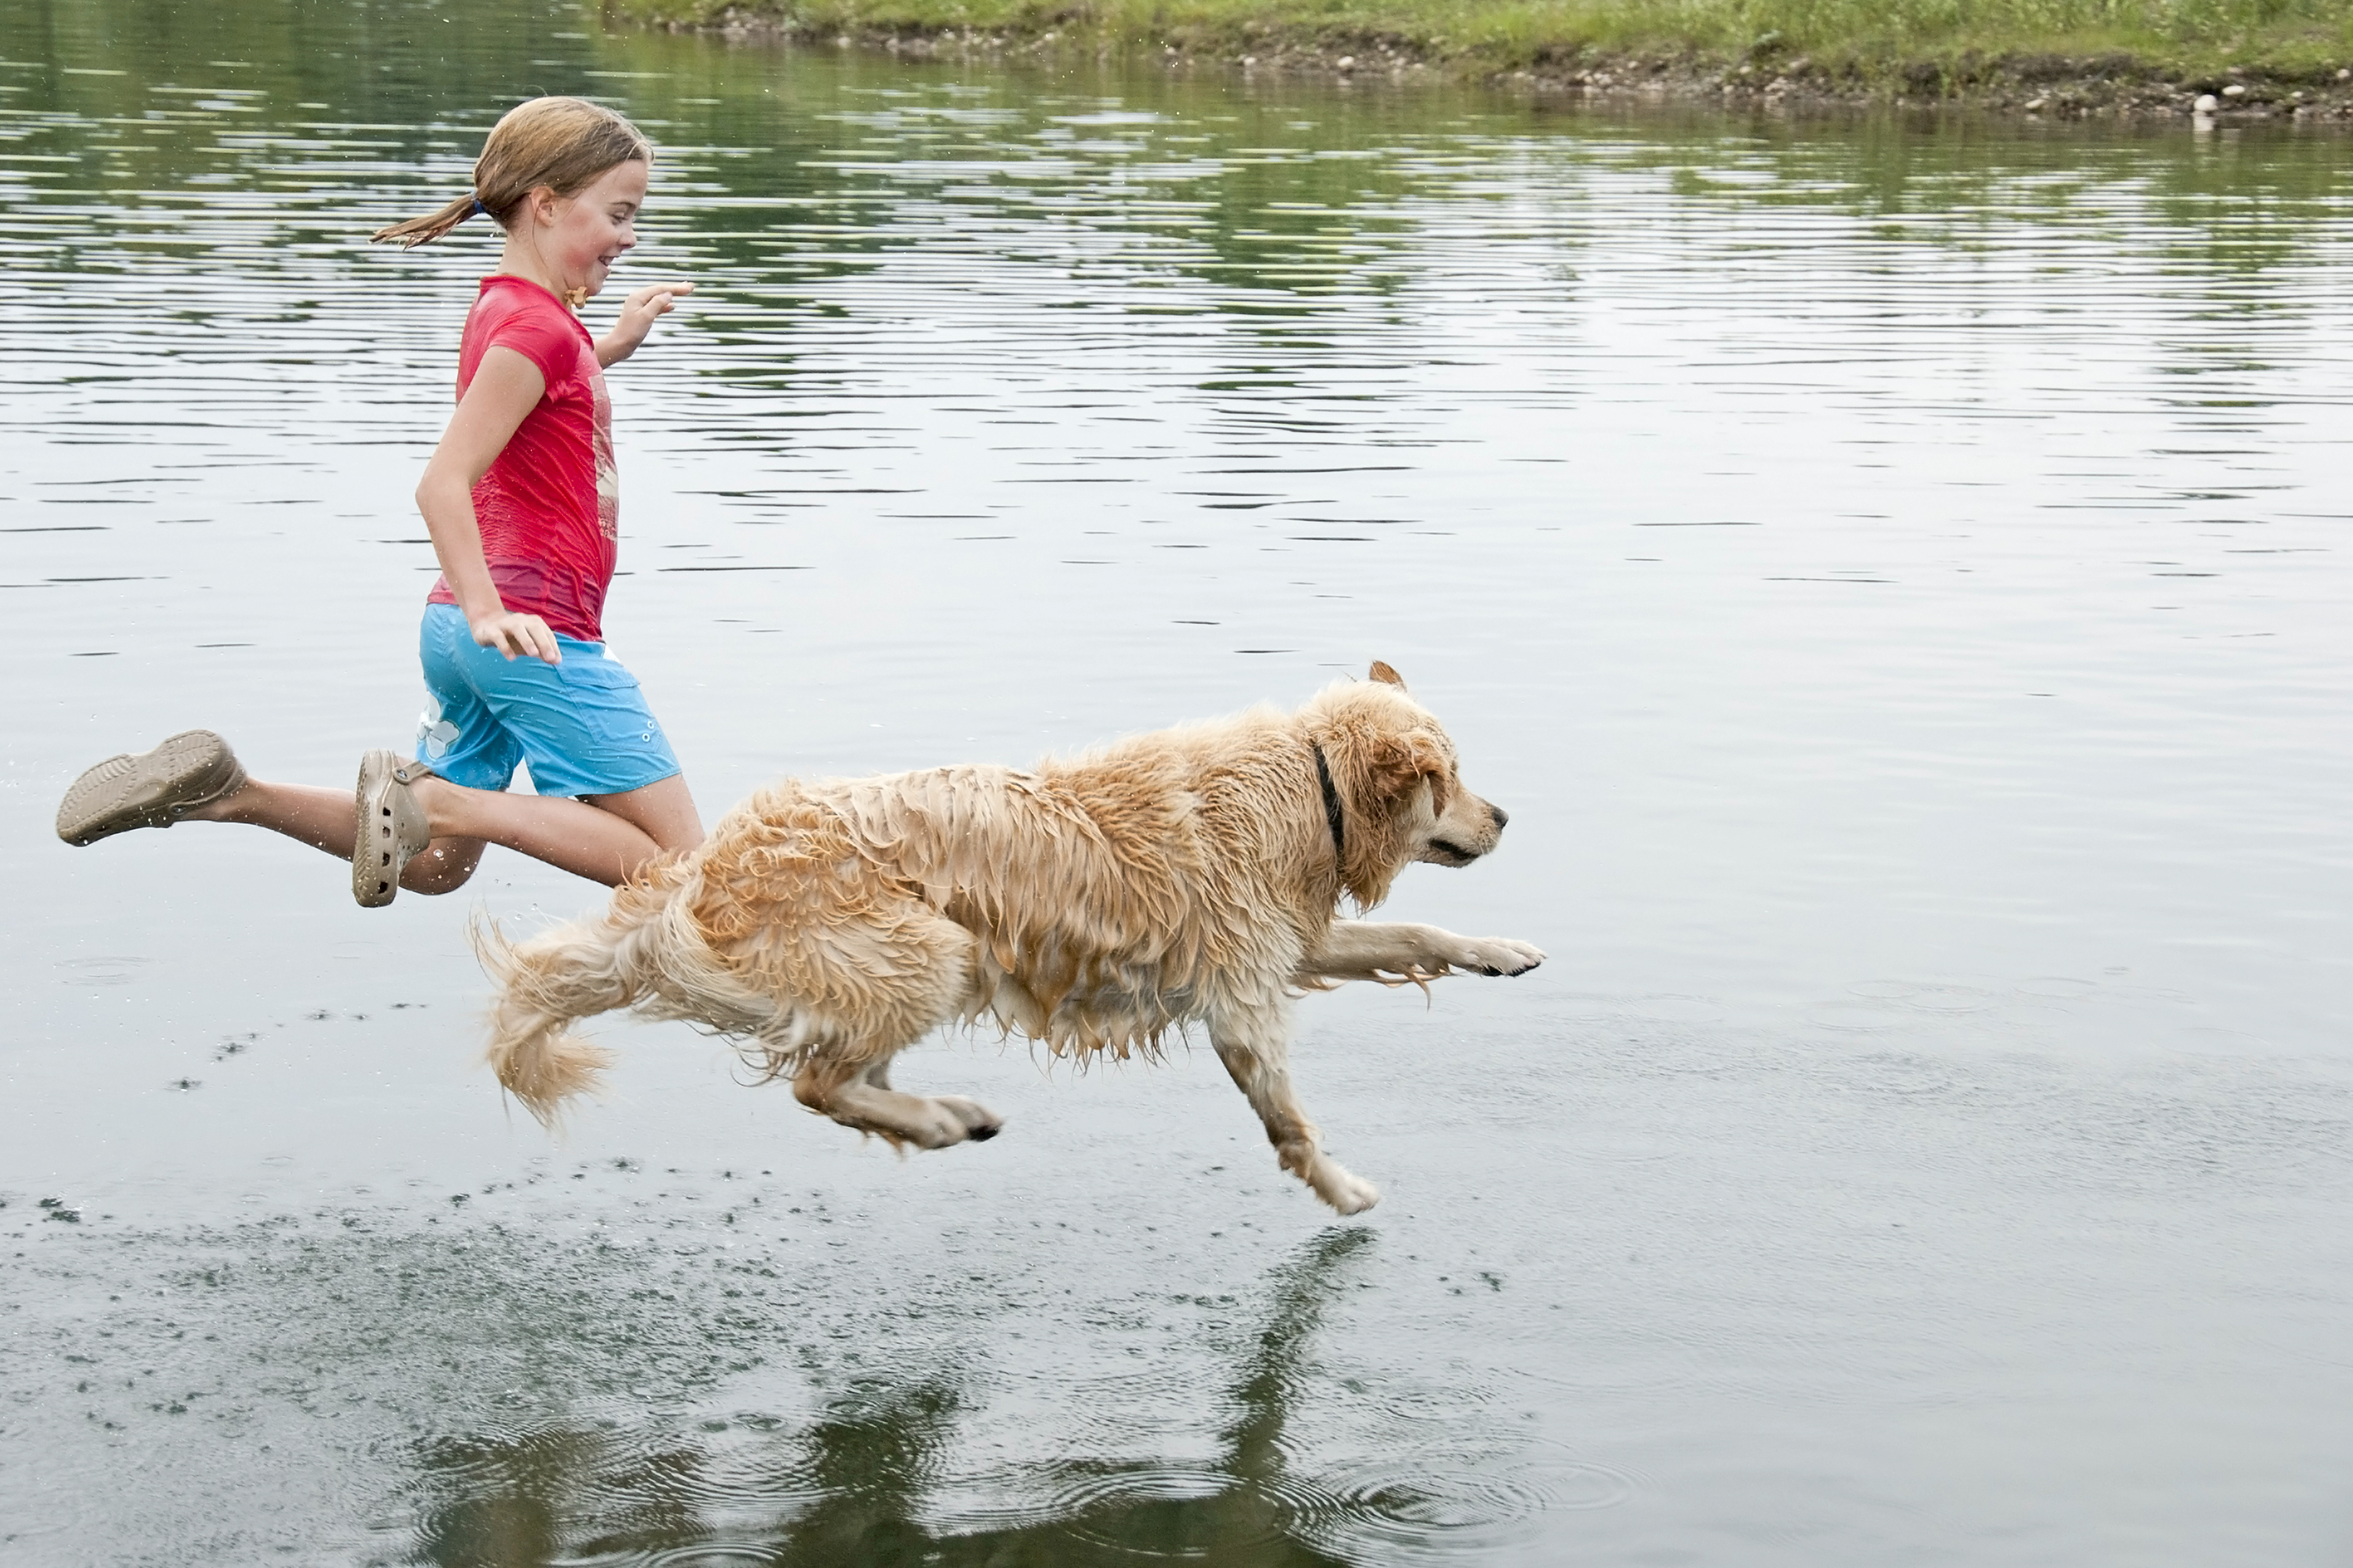 jumping-in-lake-dog-and-girl.jpg